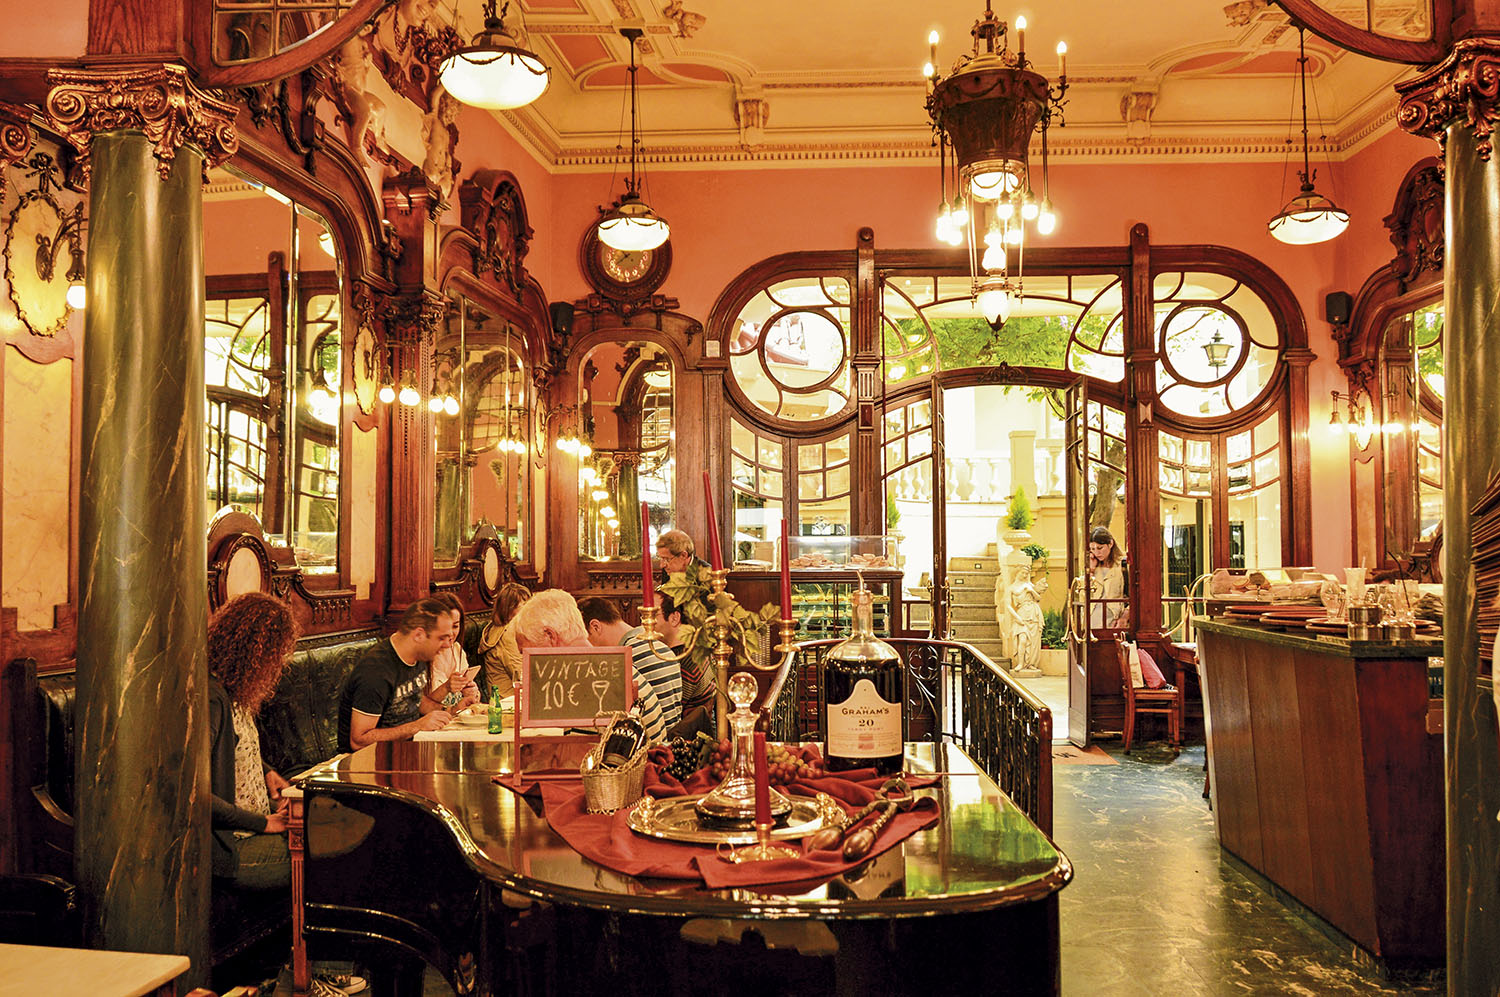 Cafe Majestic Oporto. Cafe Majestic